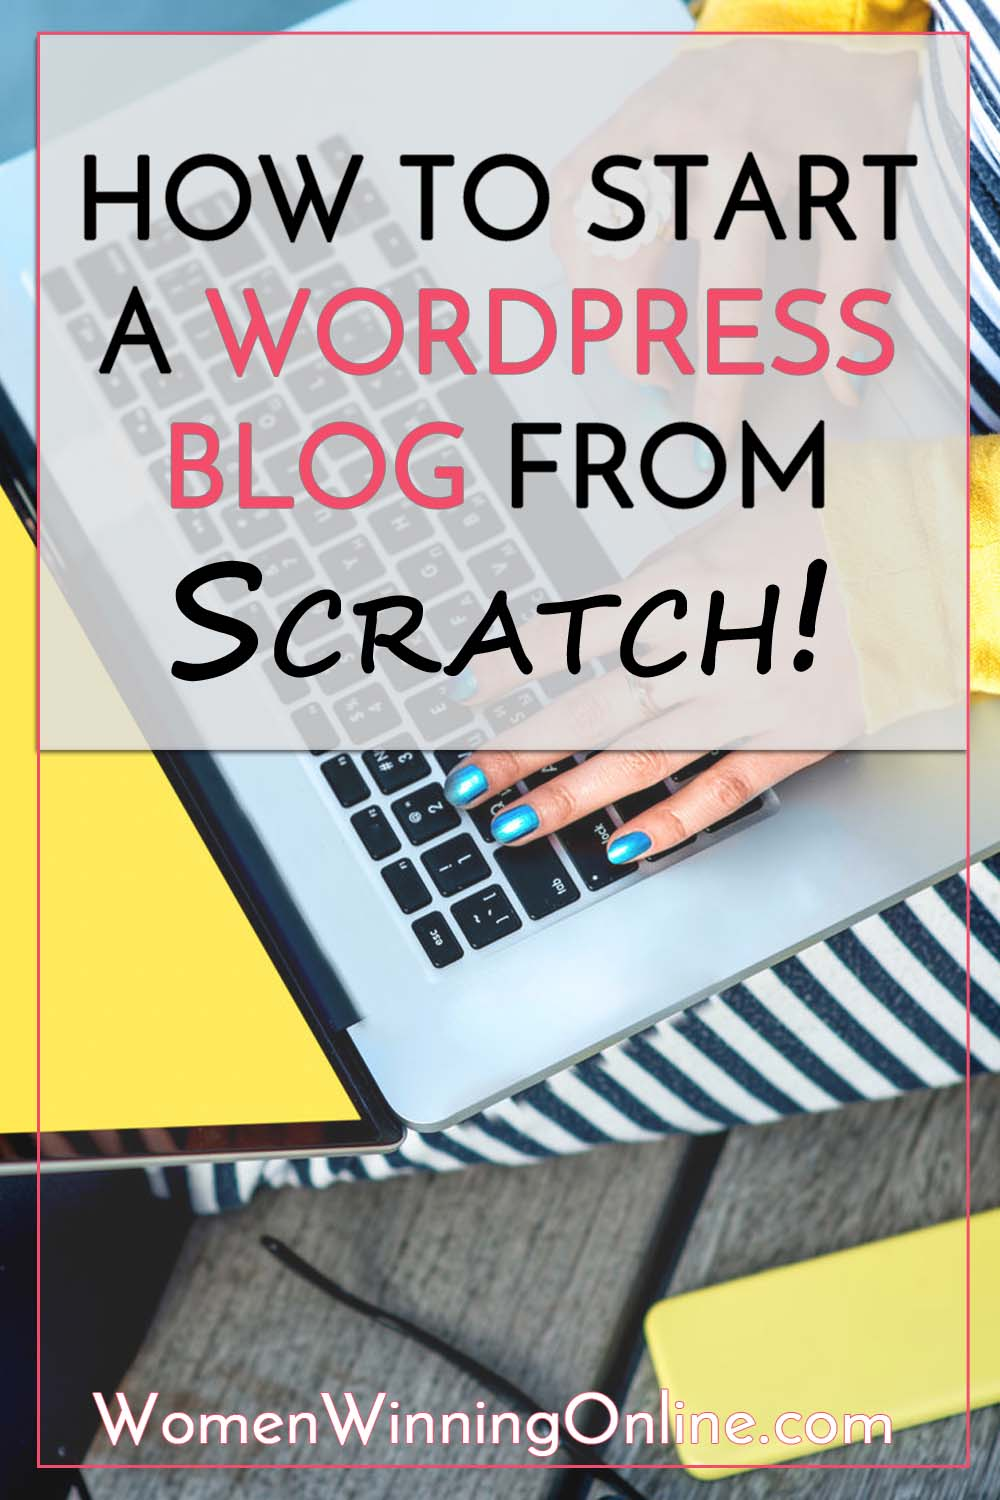 How to start a WordPress blog from scratch